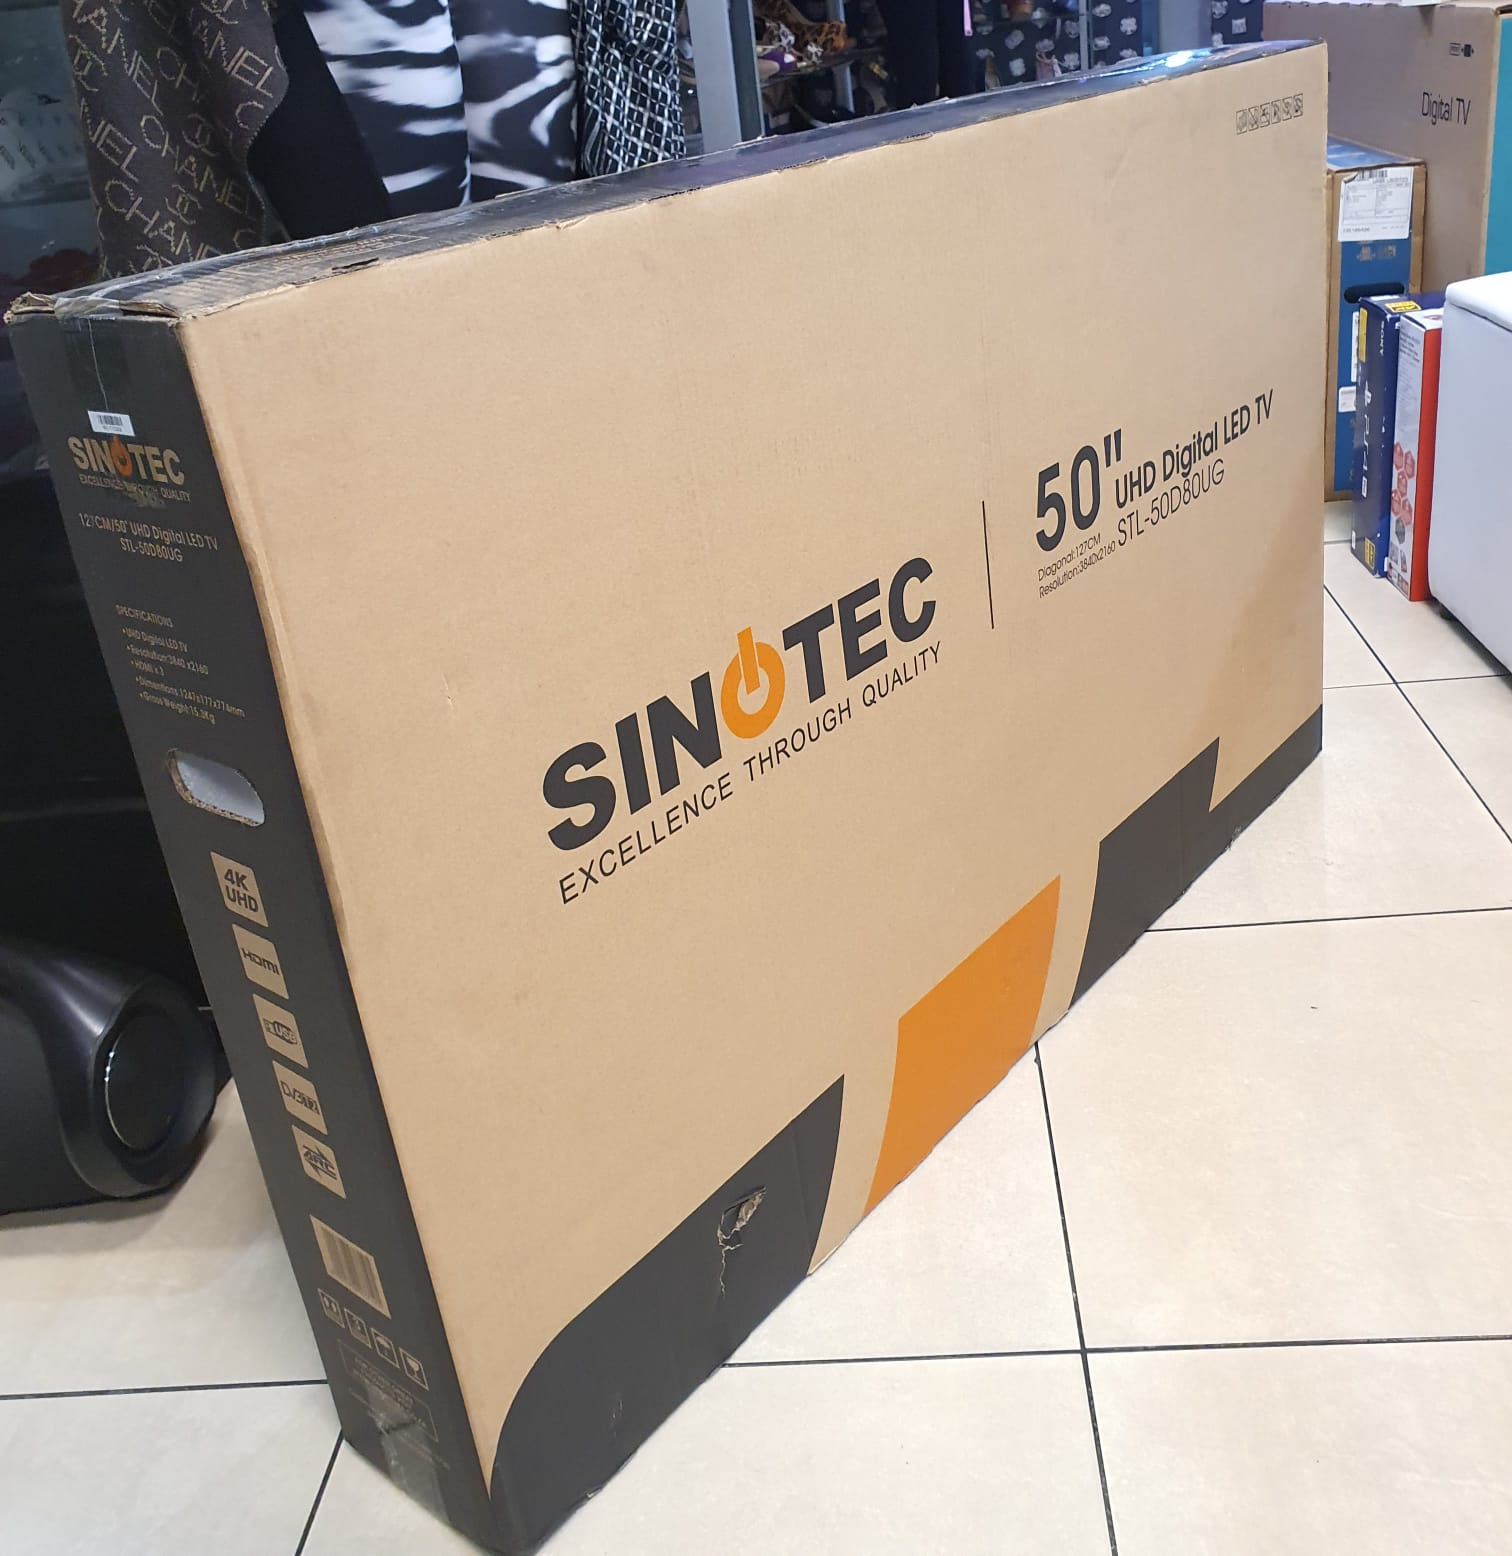 Sinotec 50 inch uhd led 3D Price is R4999 brand new sealed